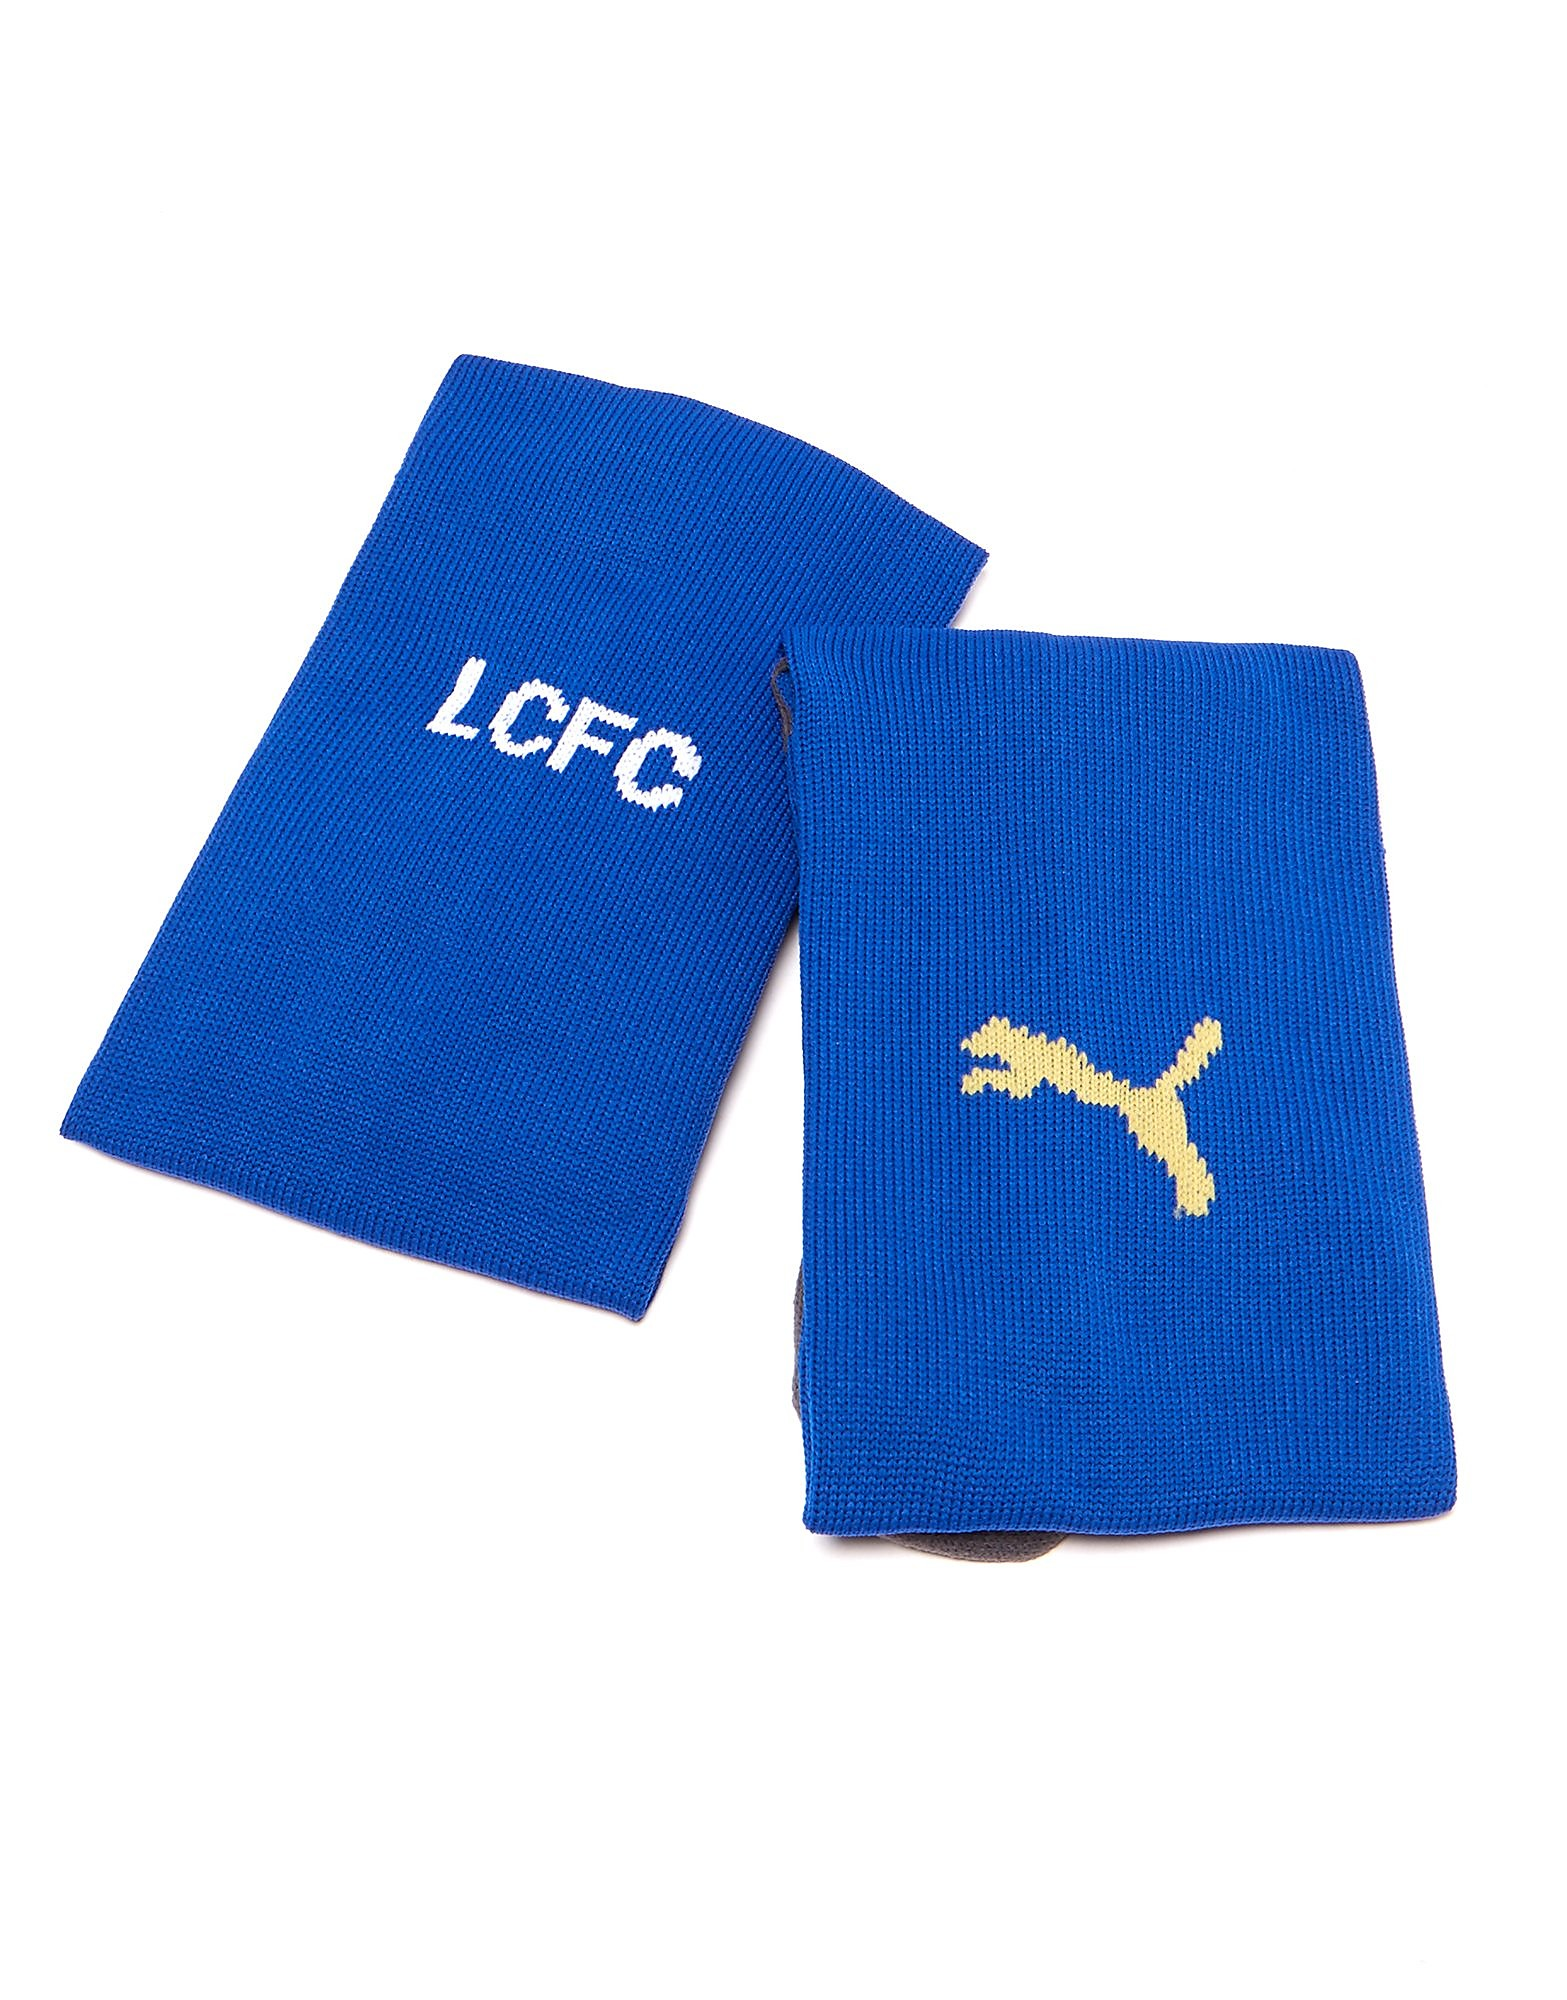 PUMA Leicester City FC 2017/18 Home Socks